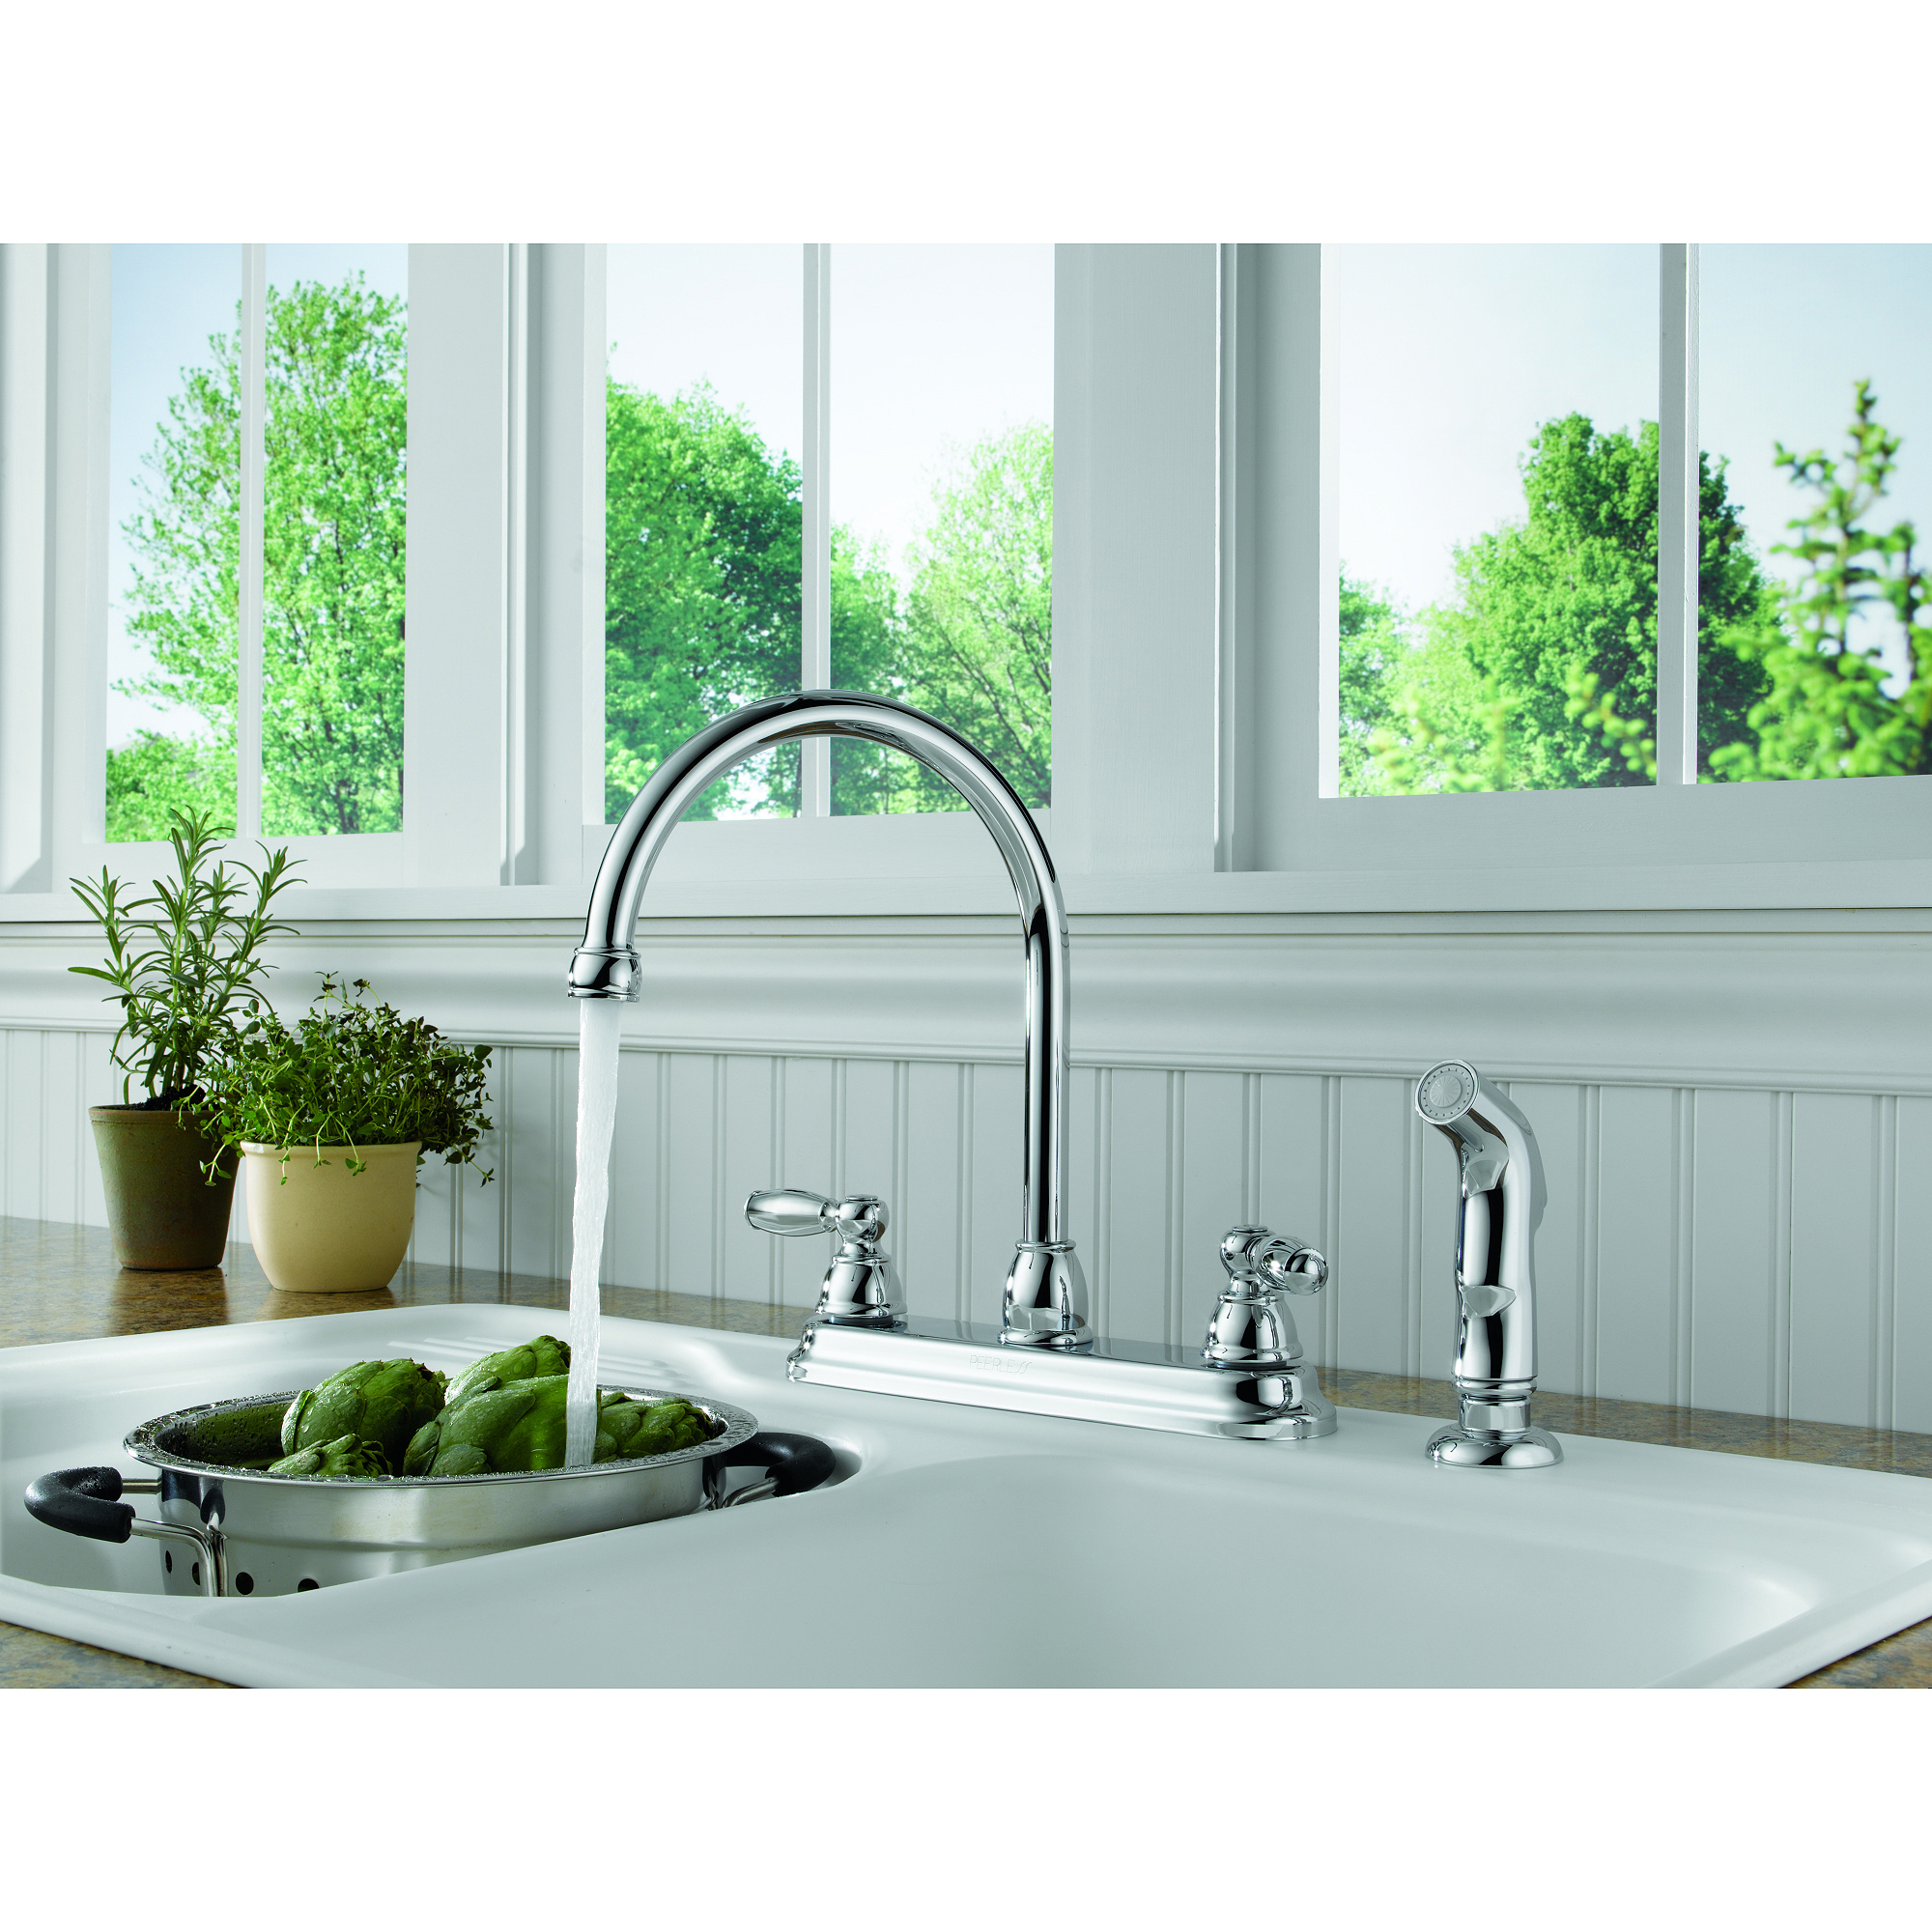 Peerless Two-Handle Kitchen Faucet with Side-Sprayer, Chrome, #P299575LF-W